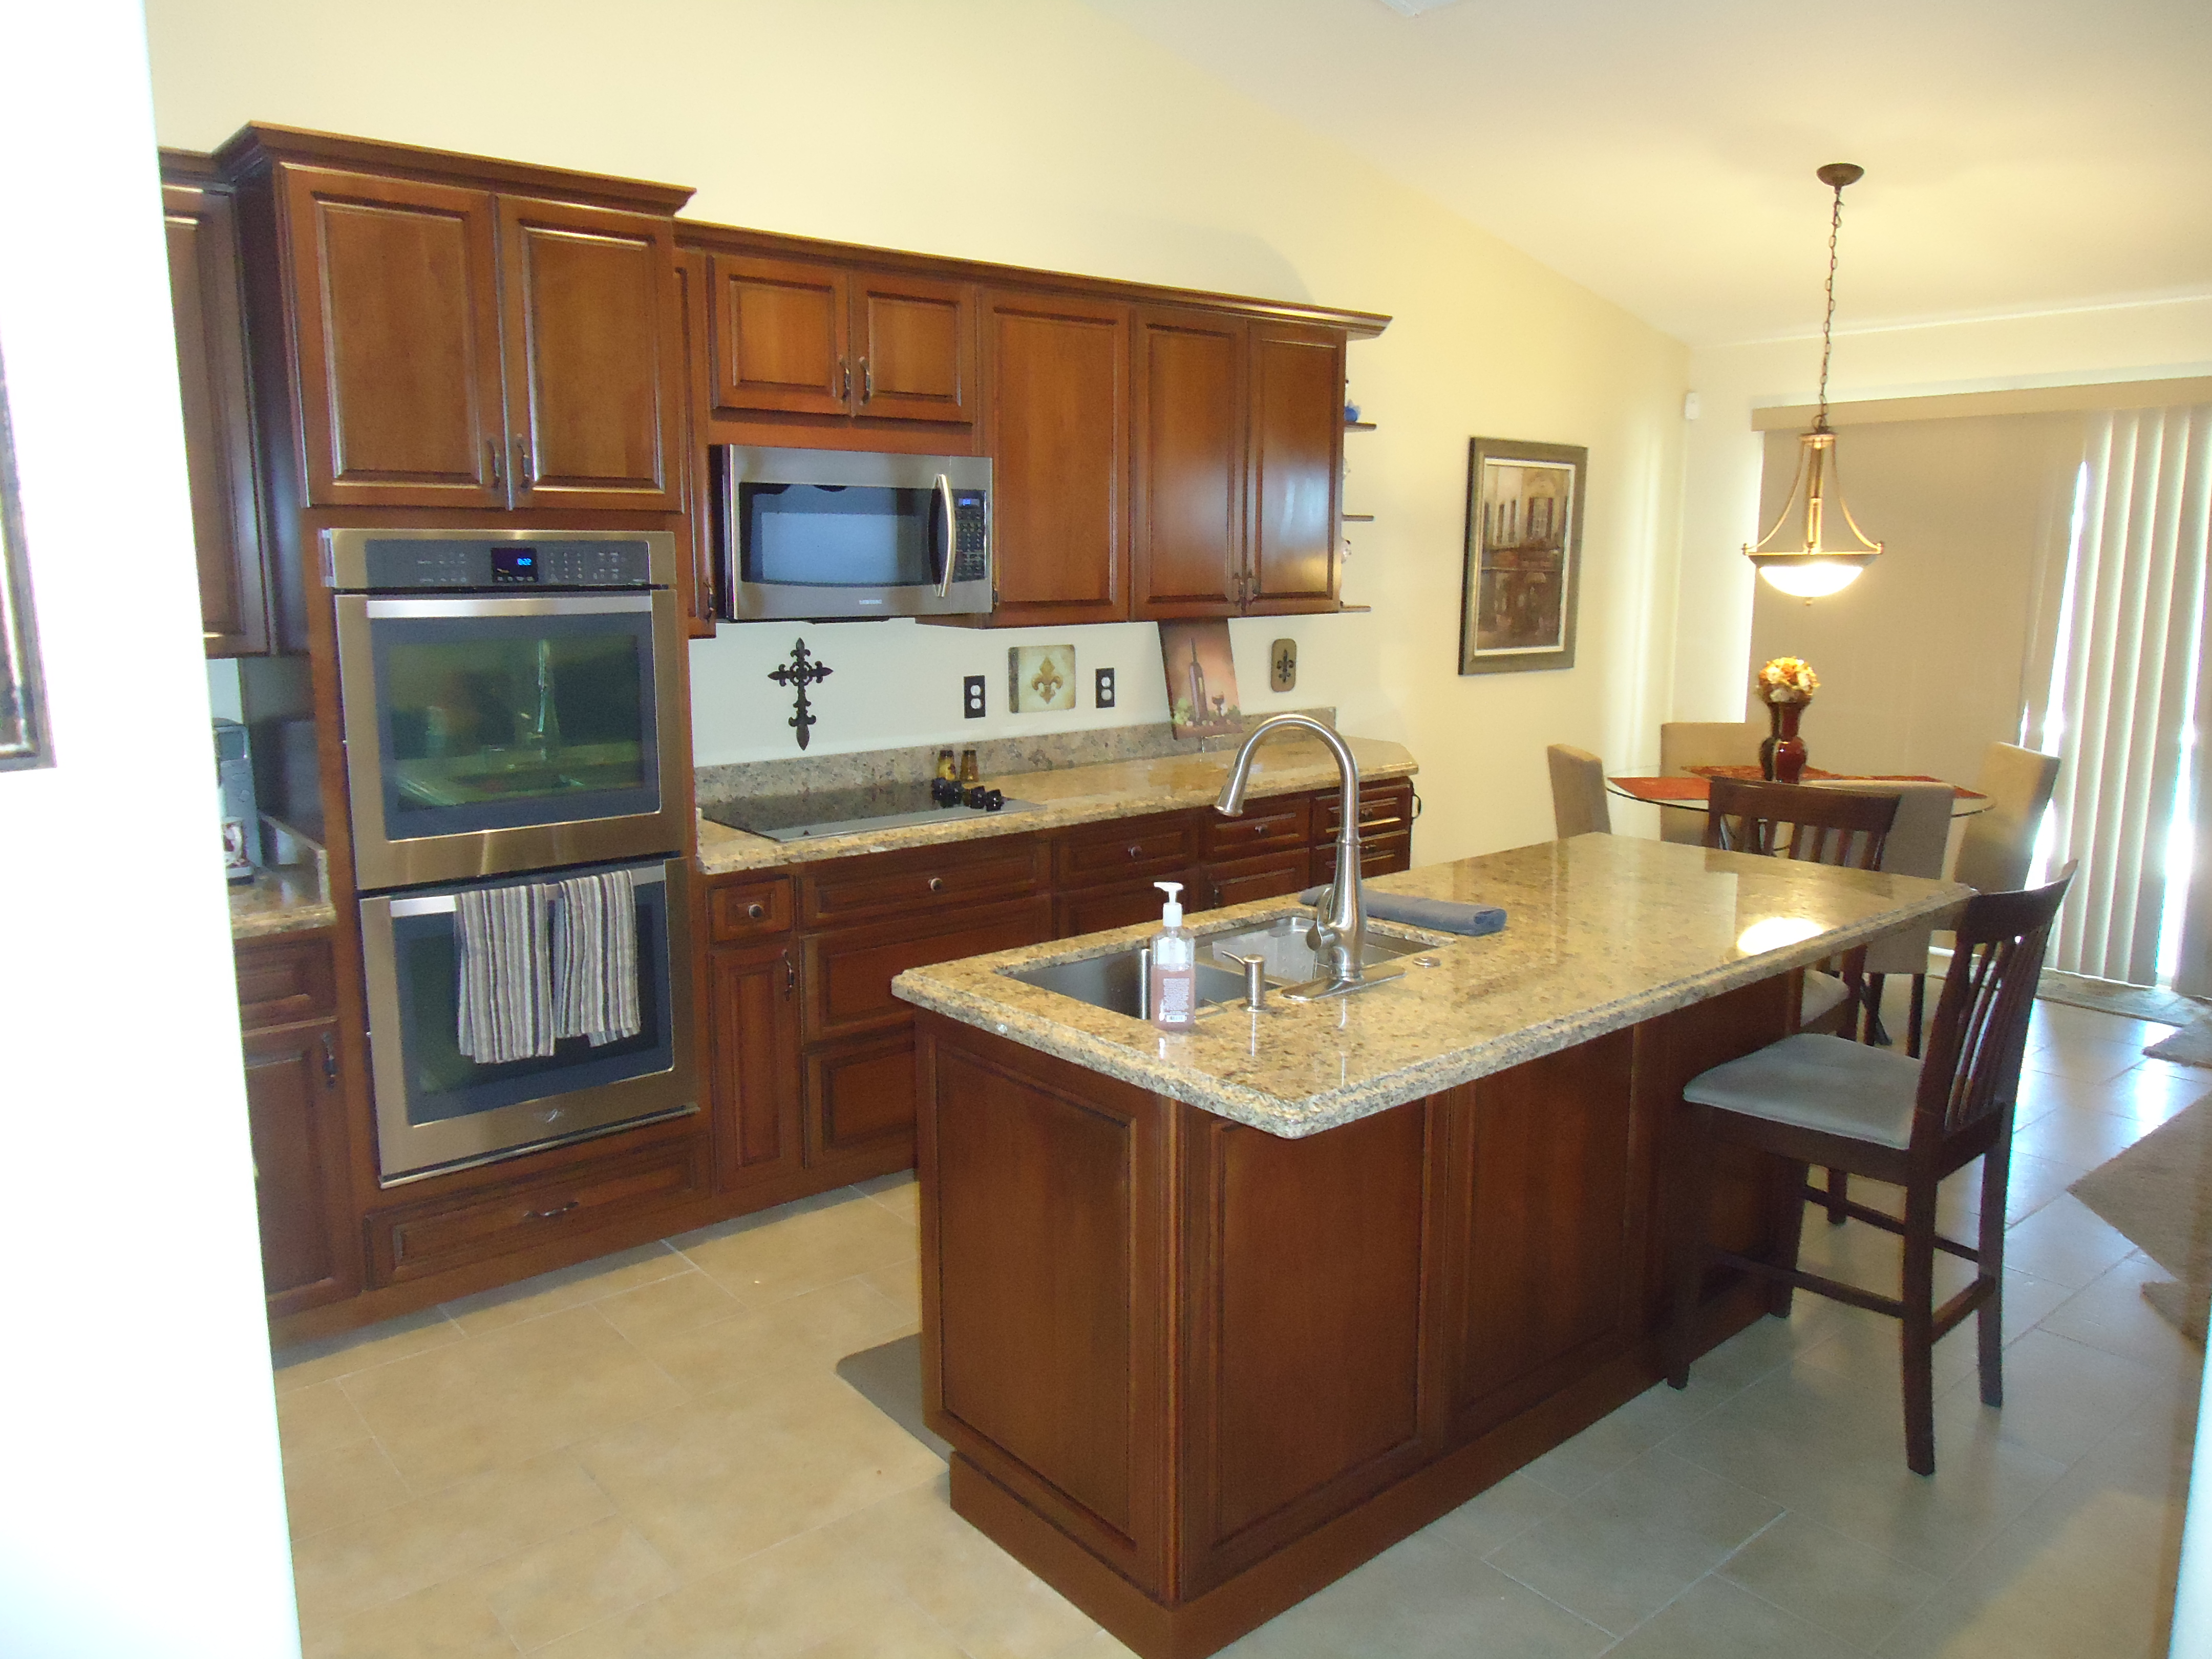 Gallery of Remodeling Projects